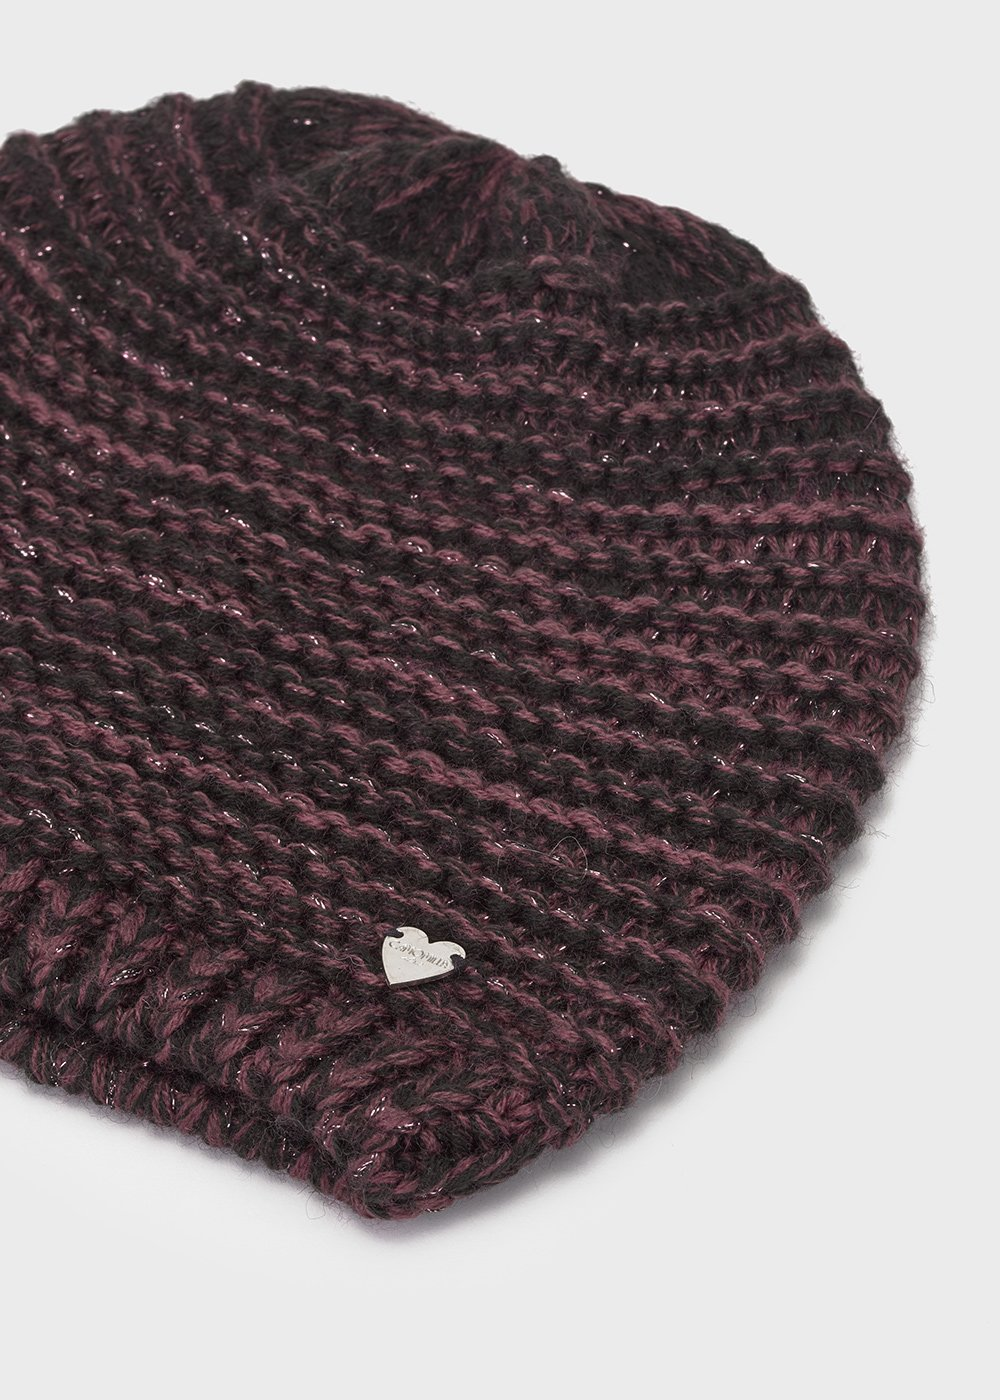 Hat with wool and lurex threads